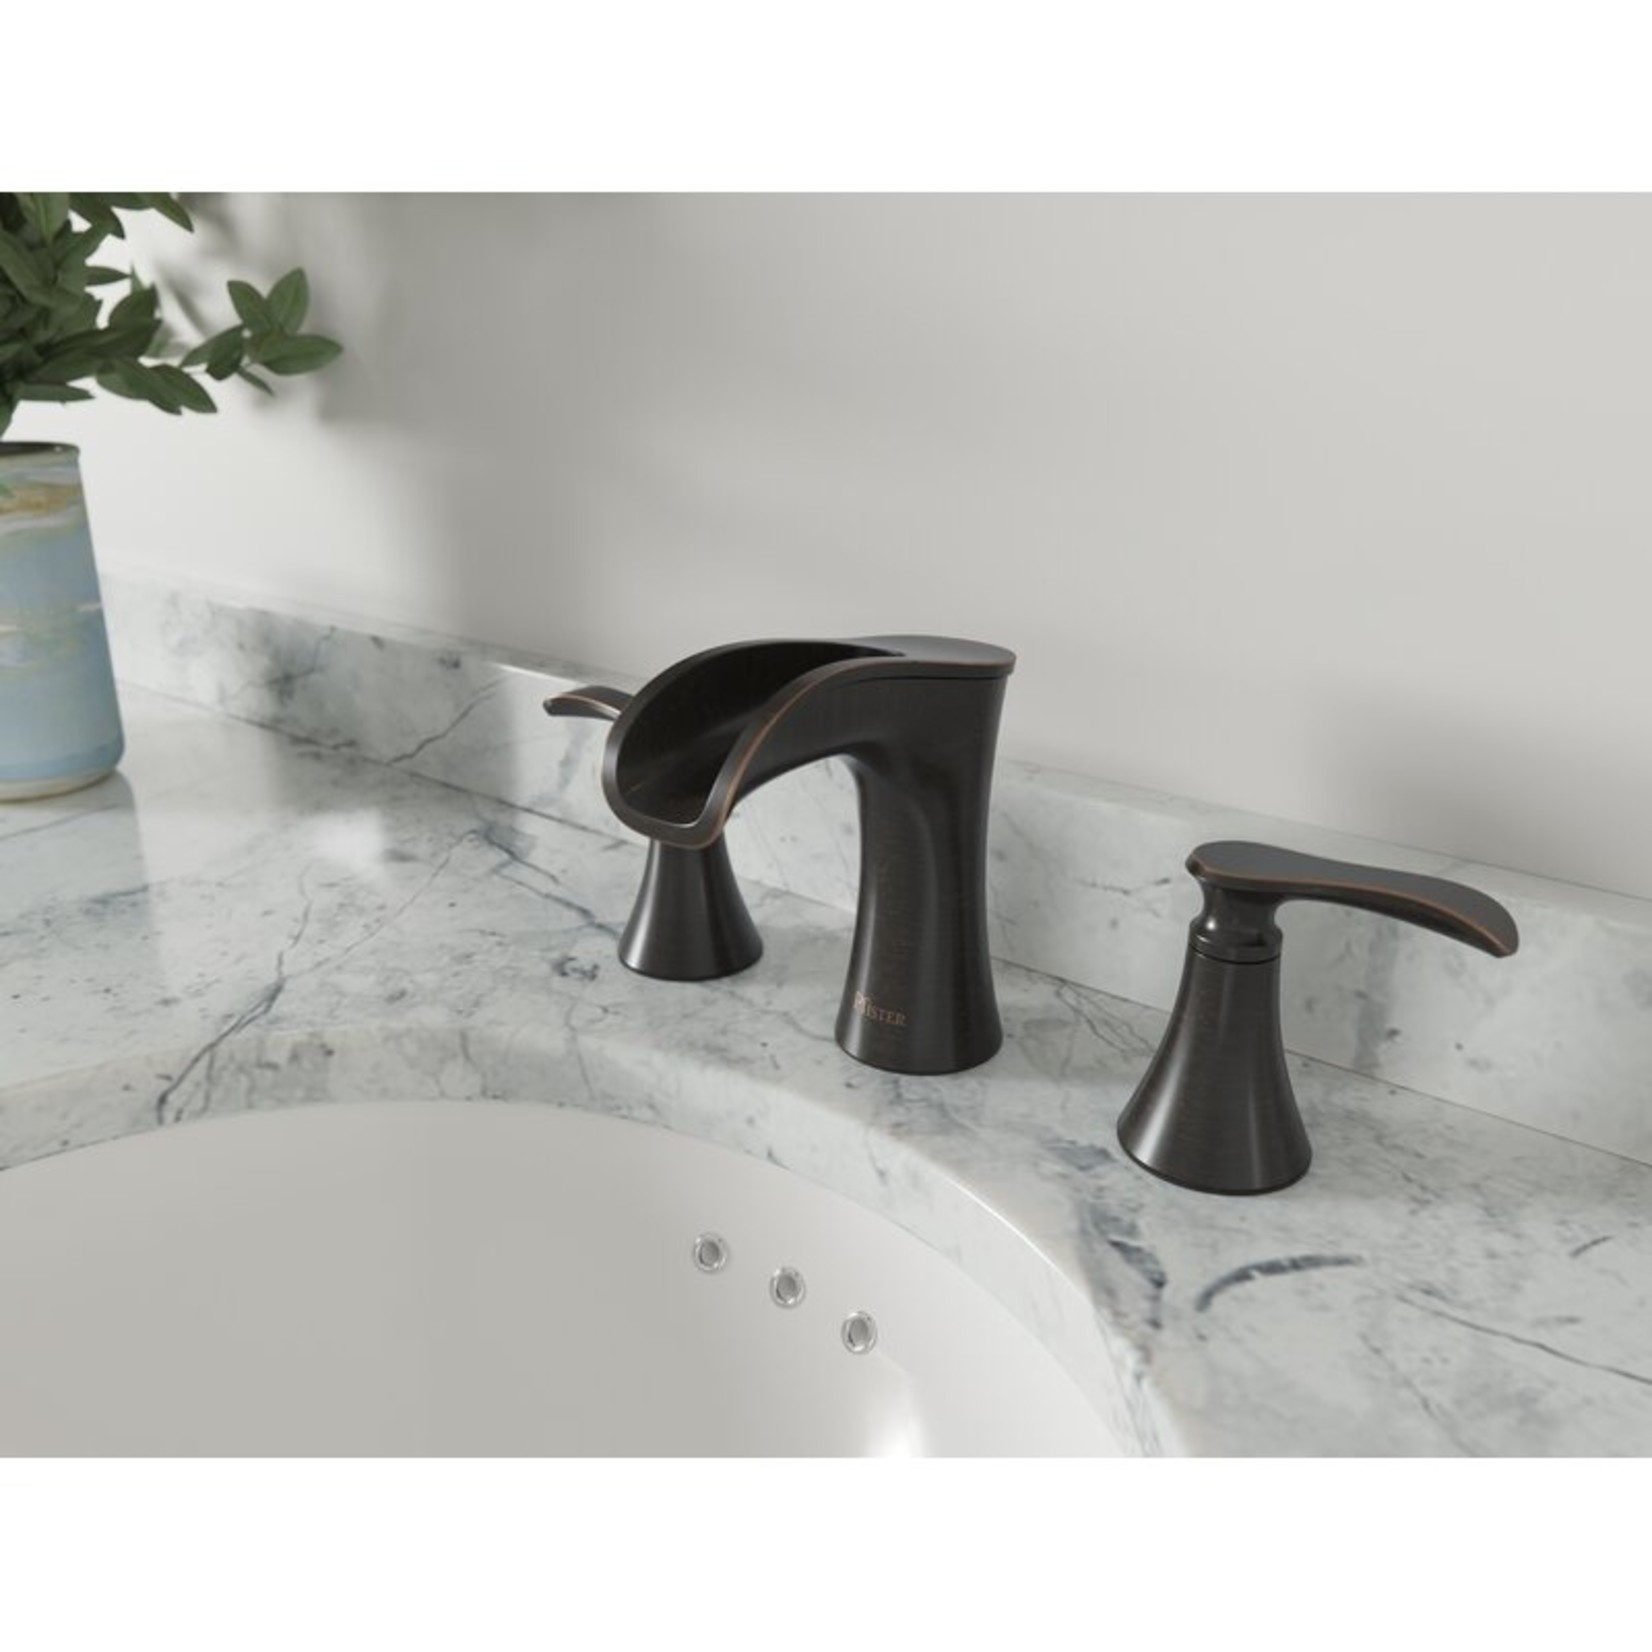 *Jaida Widespread Bathroom Faucet with Drain Assembly